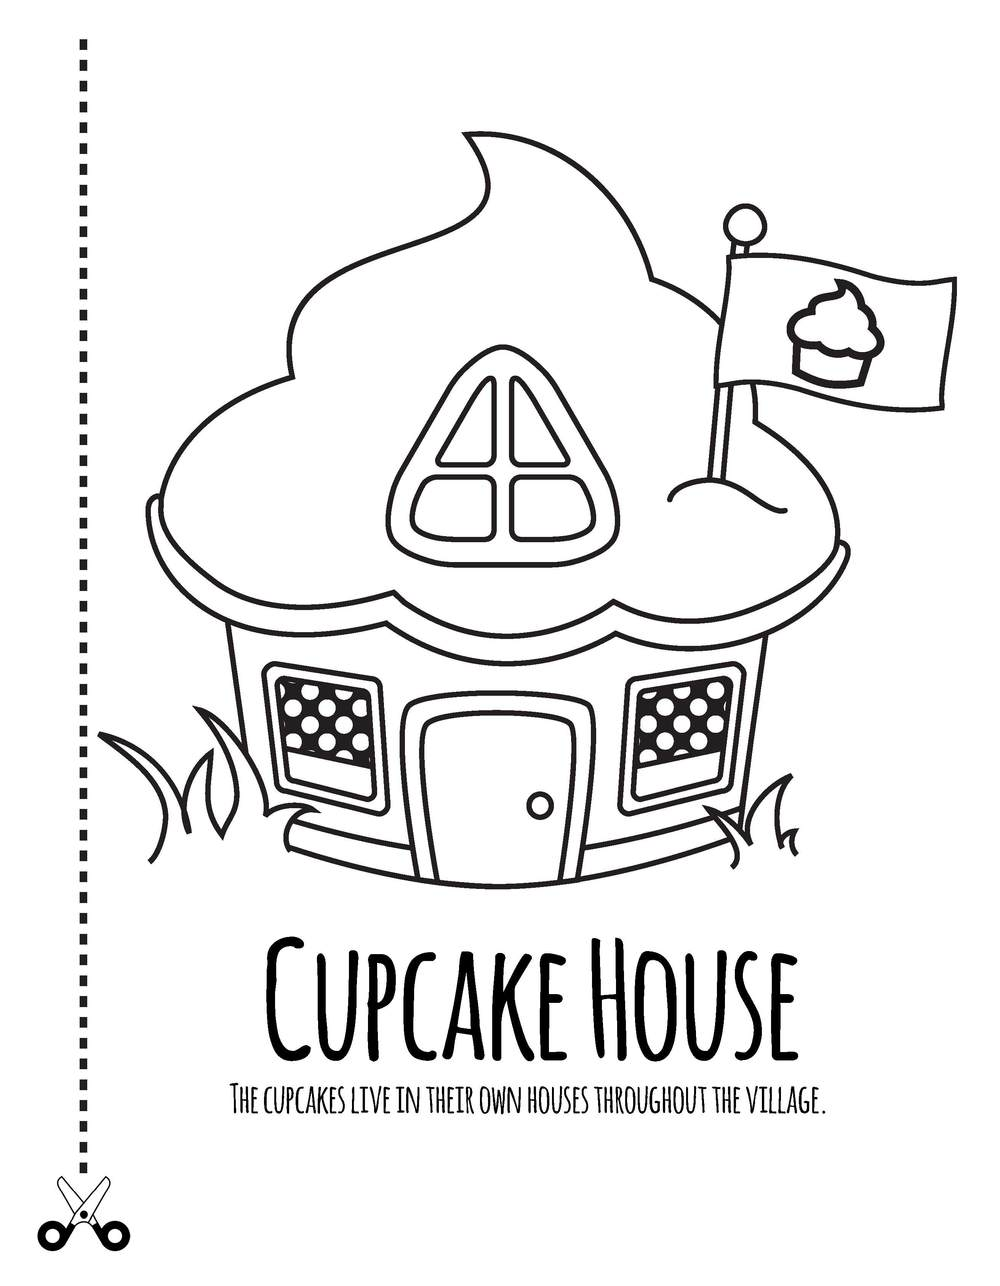 adventures of katies cupcakes coloring book_Page_37.jpg